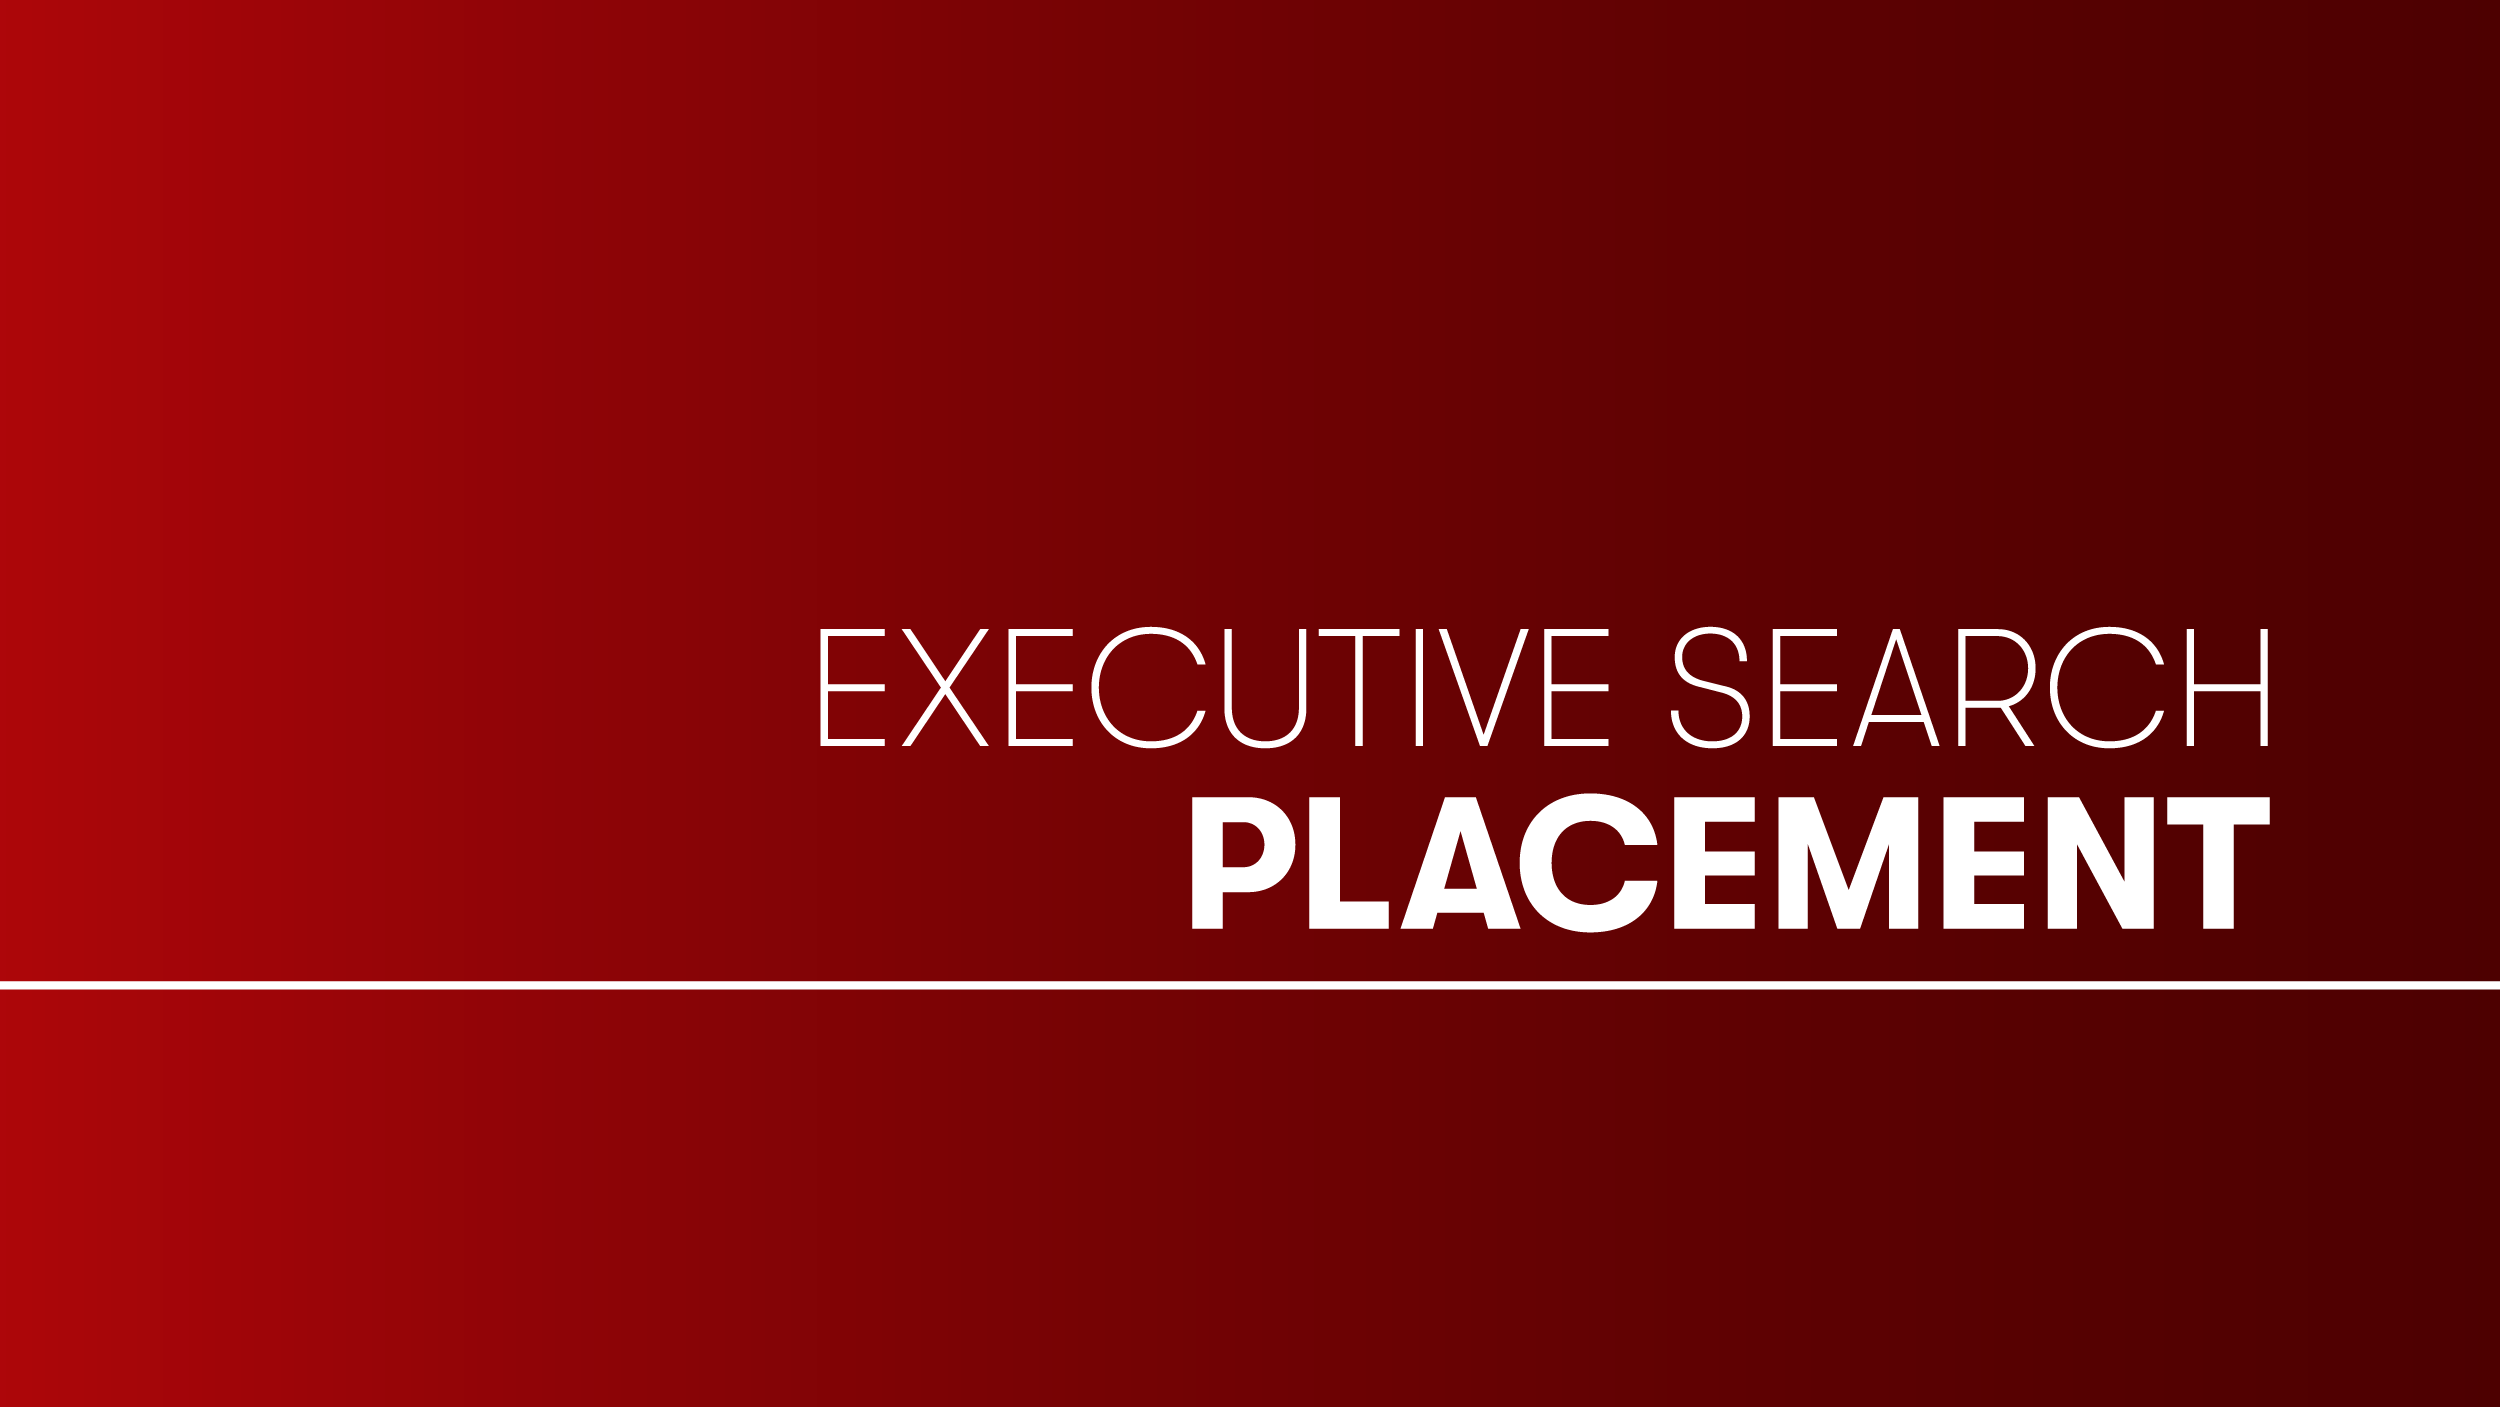 Executive Search Placement